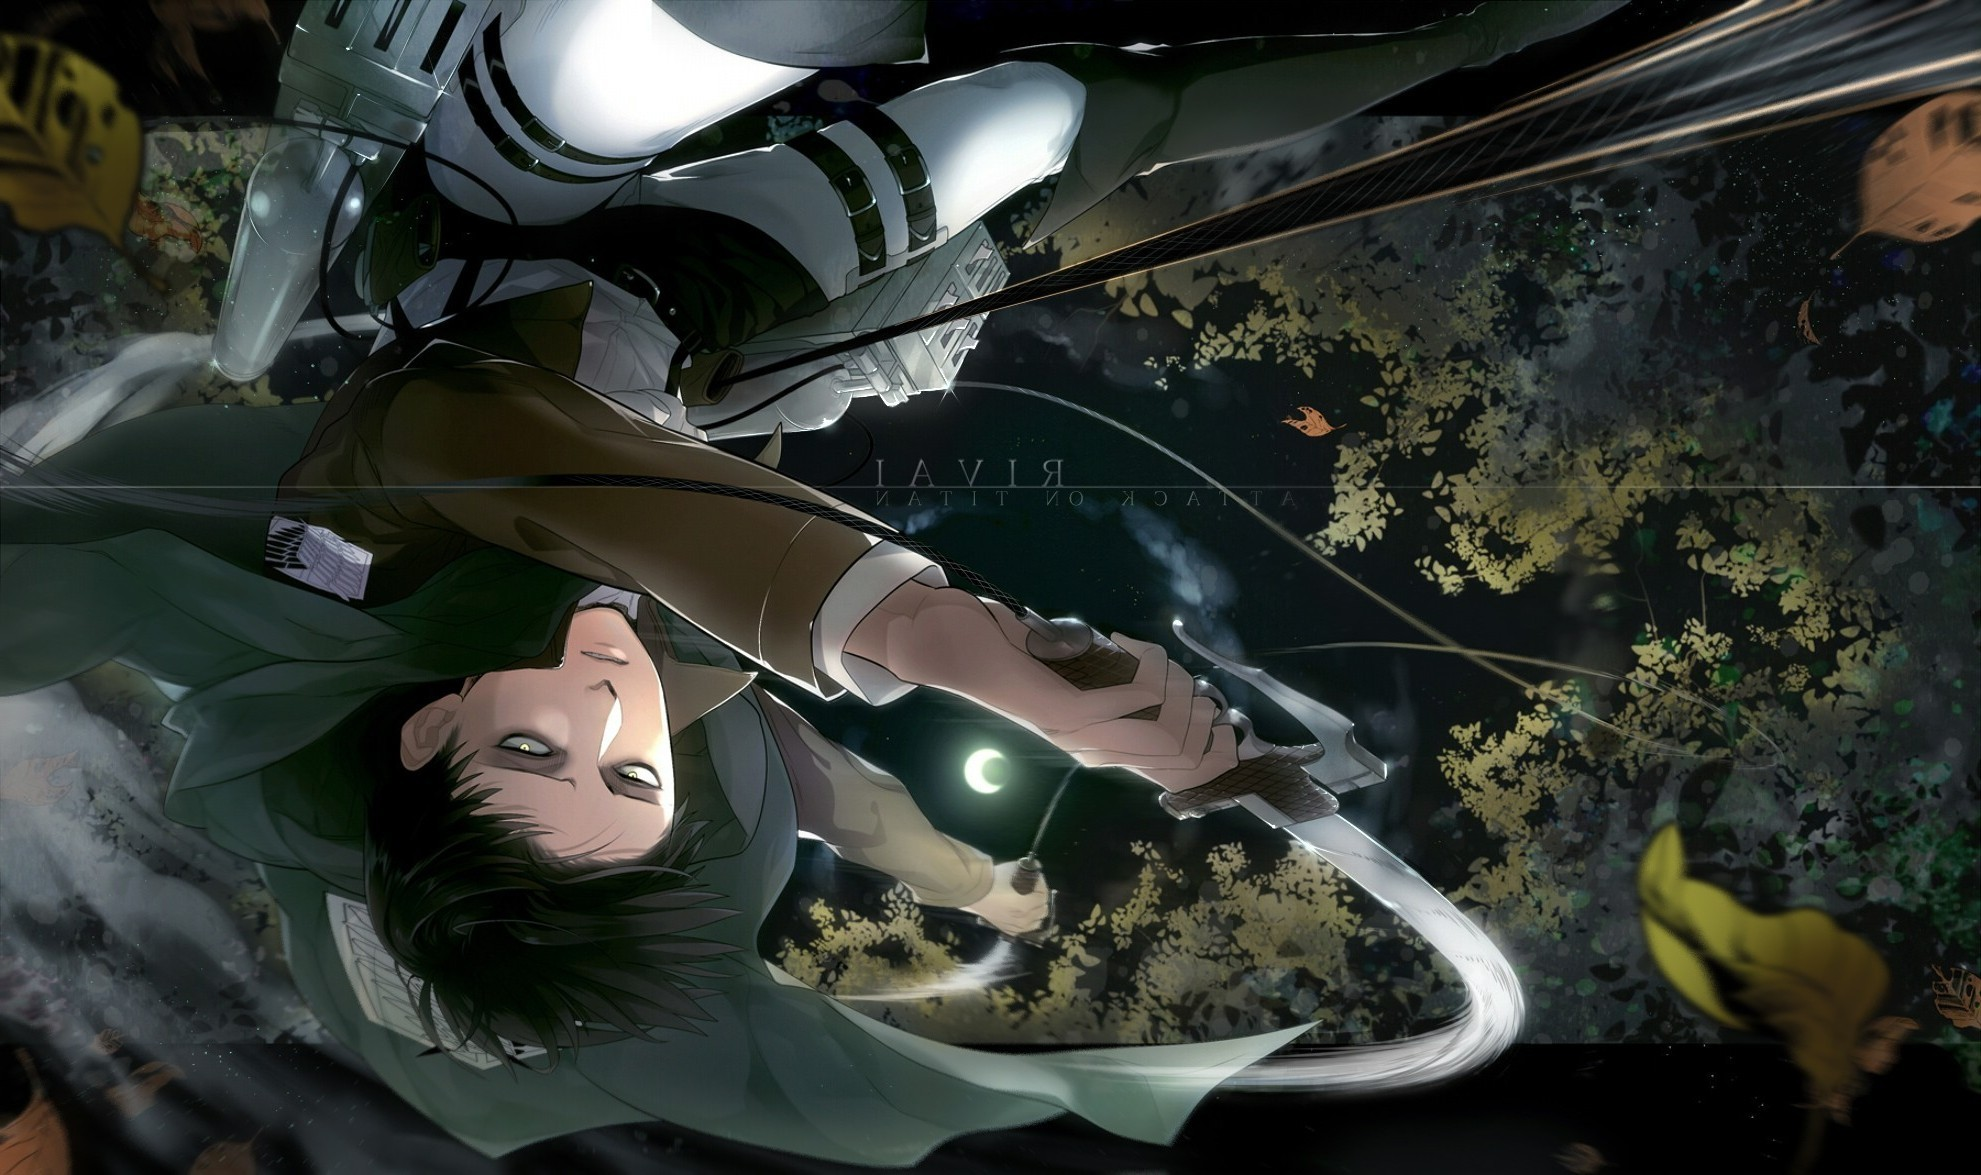 Mikasa Shingeki No Kyojin Levi 4k 475274 Hd Wallpaper Backgrounds Download